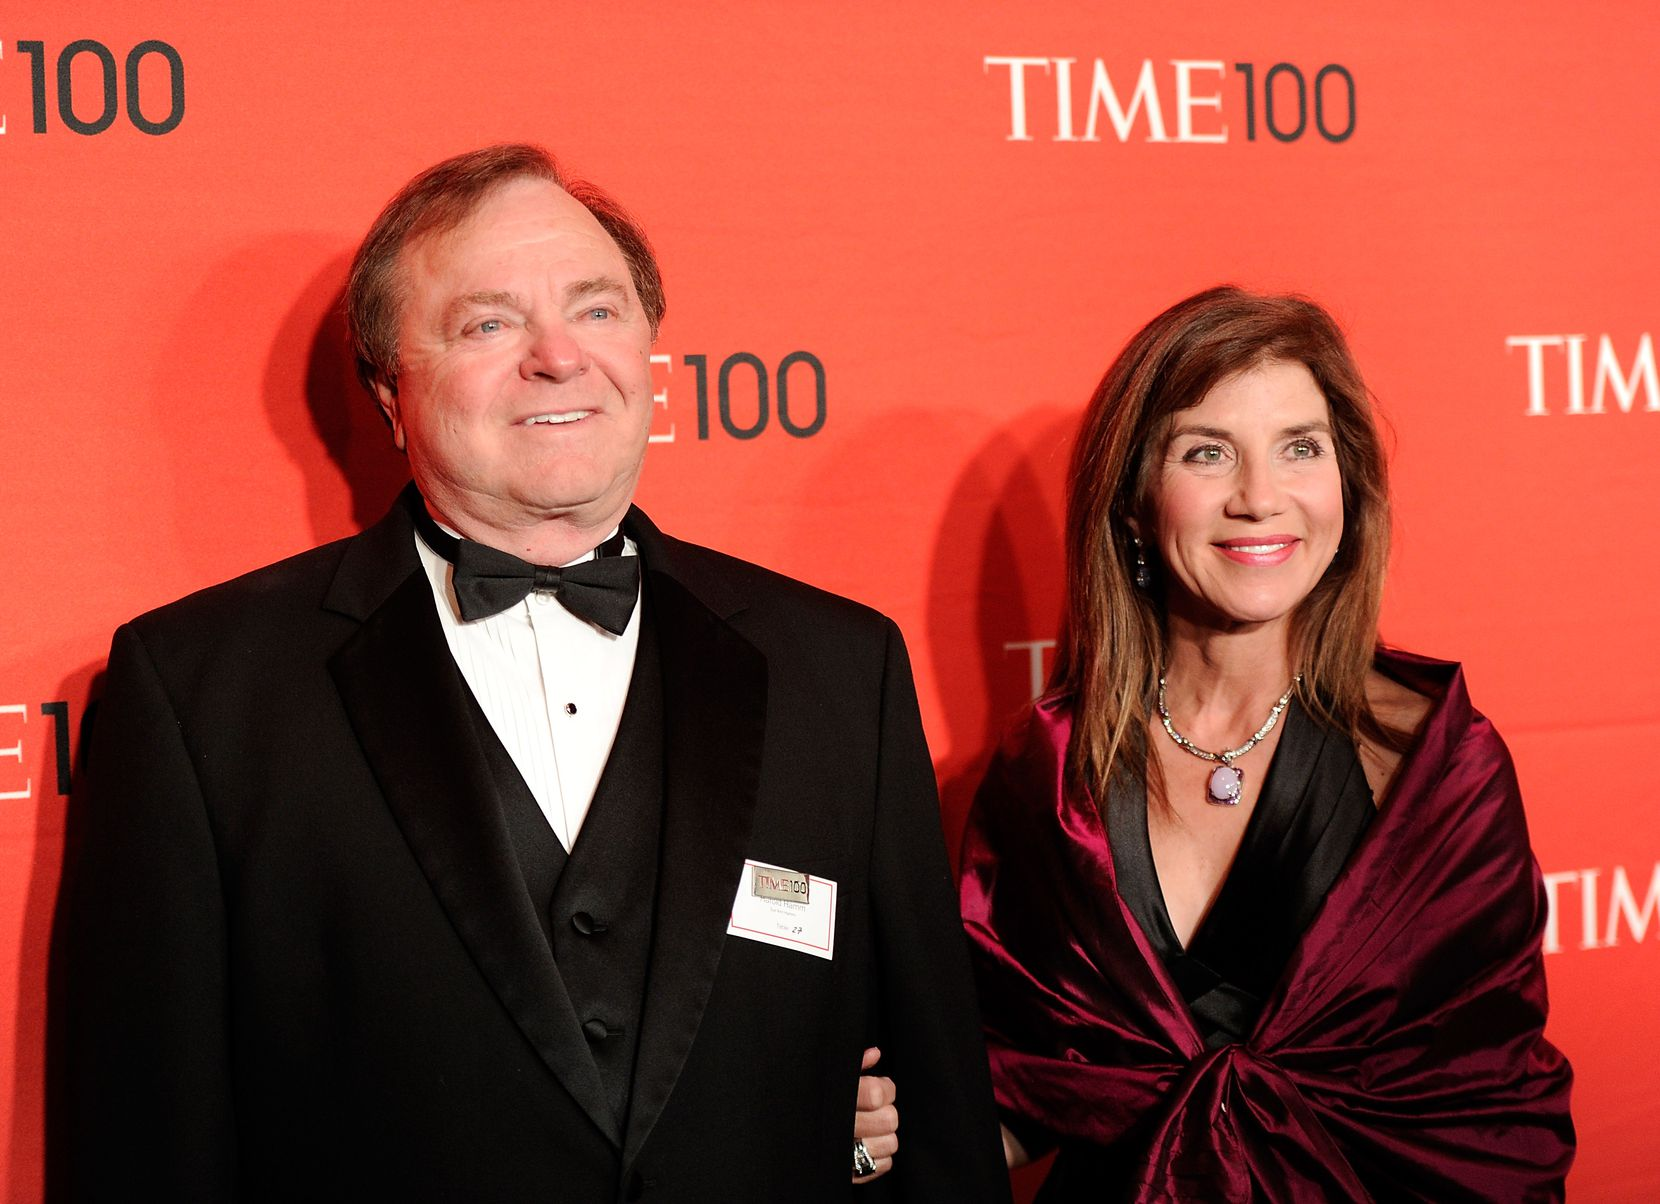 FILE - In this April 24, 2012 file photo, Continental Resources CEO Harold Hamm and his then wife Sue Ann Hamm attend the TIME 100 gala, celebrating the 100 most influential people in the world, at the Frederick P. Rose Hall in New York. Sue Ann, now the ex-wife of multibillionaire energy tycoon Hamm, plans to appeal a court ruling that awarded her nearly $1 billion in a divorce settlement, according to her attorney. An Oklahoma County judge awarded $995.4 million this week to Sue Ann, who was married for more than 20 years to the Continental Resources Inc. CEO before she filed for divorce in 2012.  (AP Photo/Evan Agostini, File) 01022015xBIZ